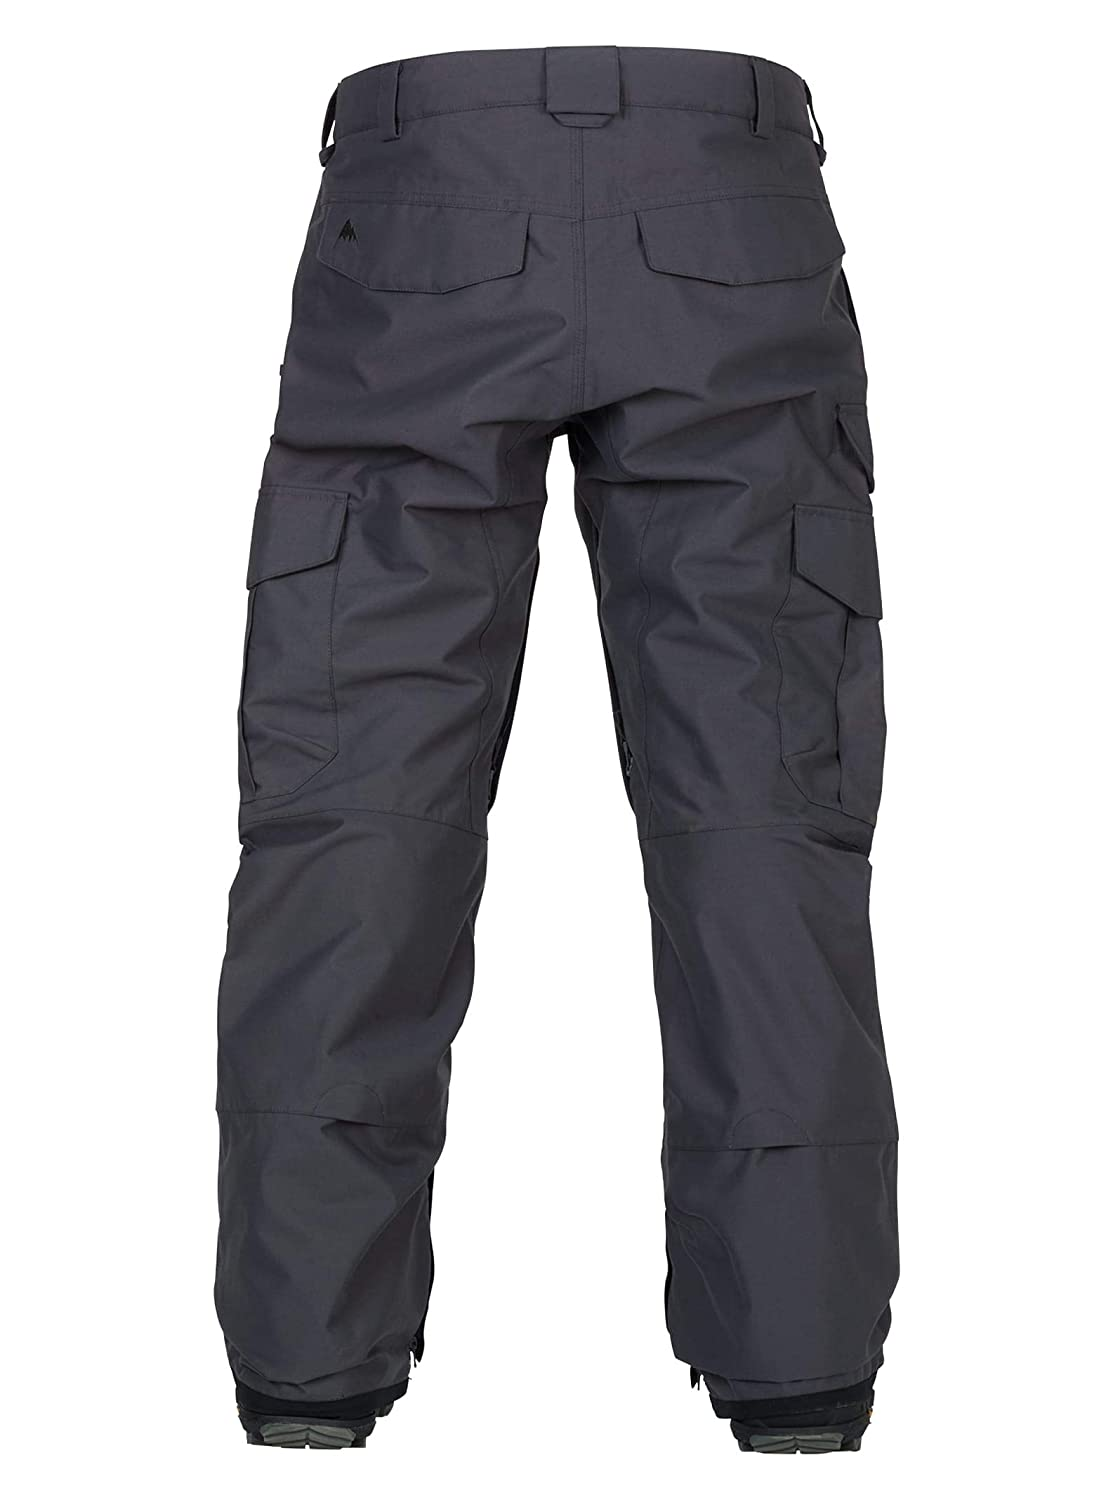 Burton Mens Cargo Pant Regular Fit